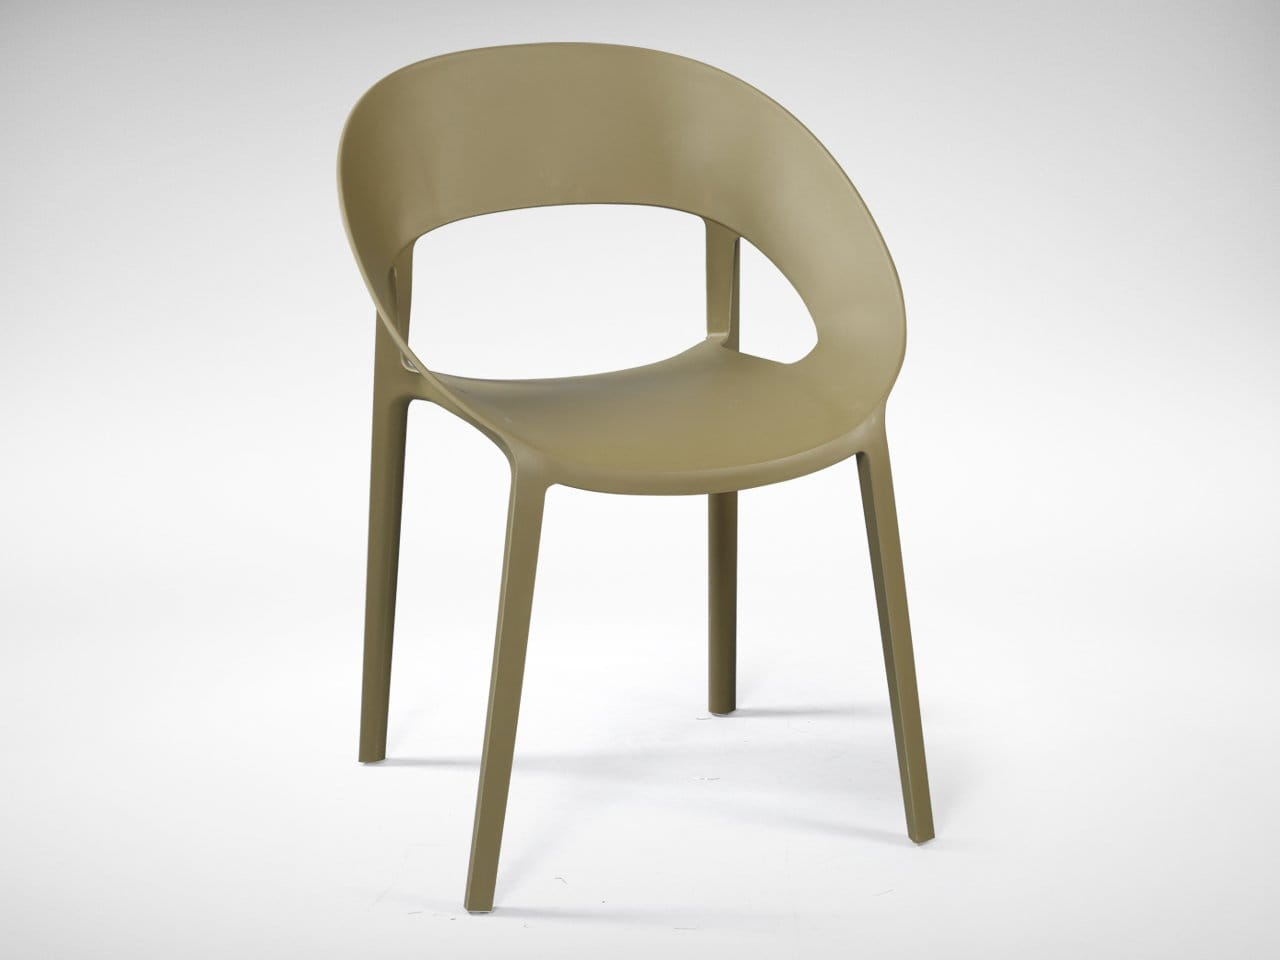 Mumbai Arm Chair Comfort Design The Chair Amp Table People